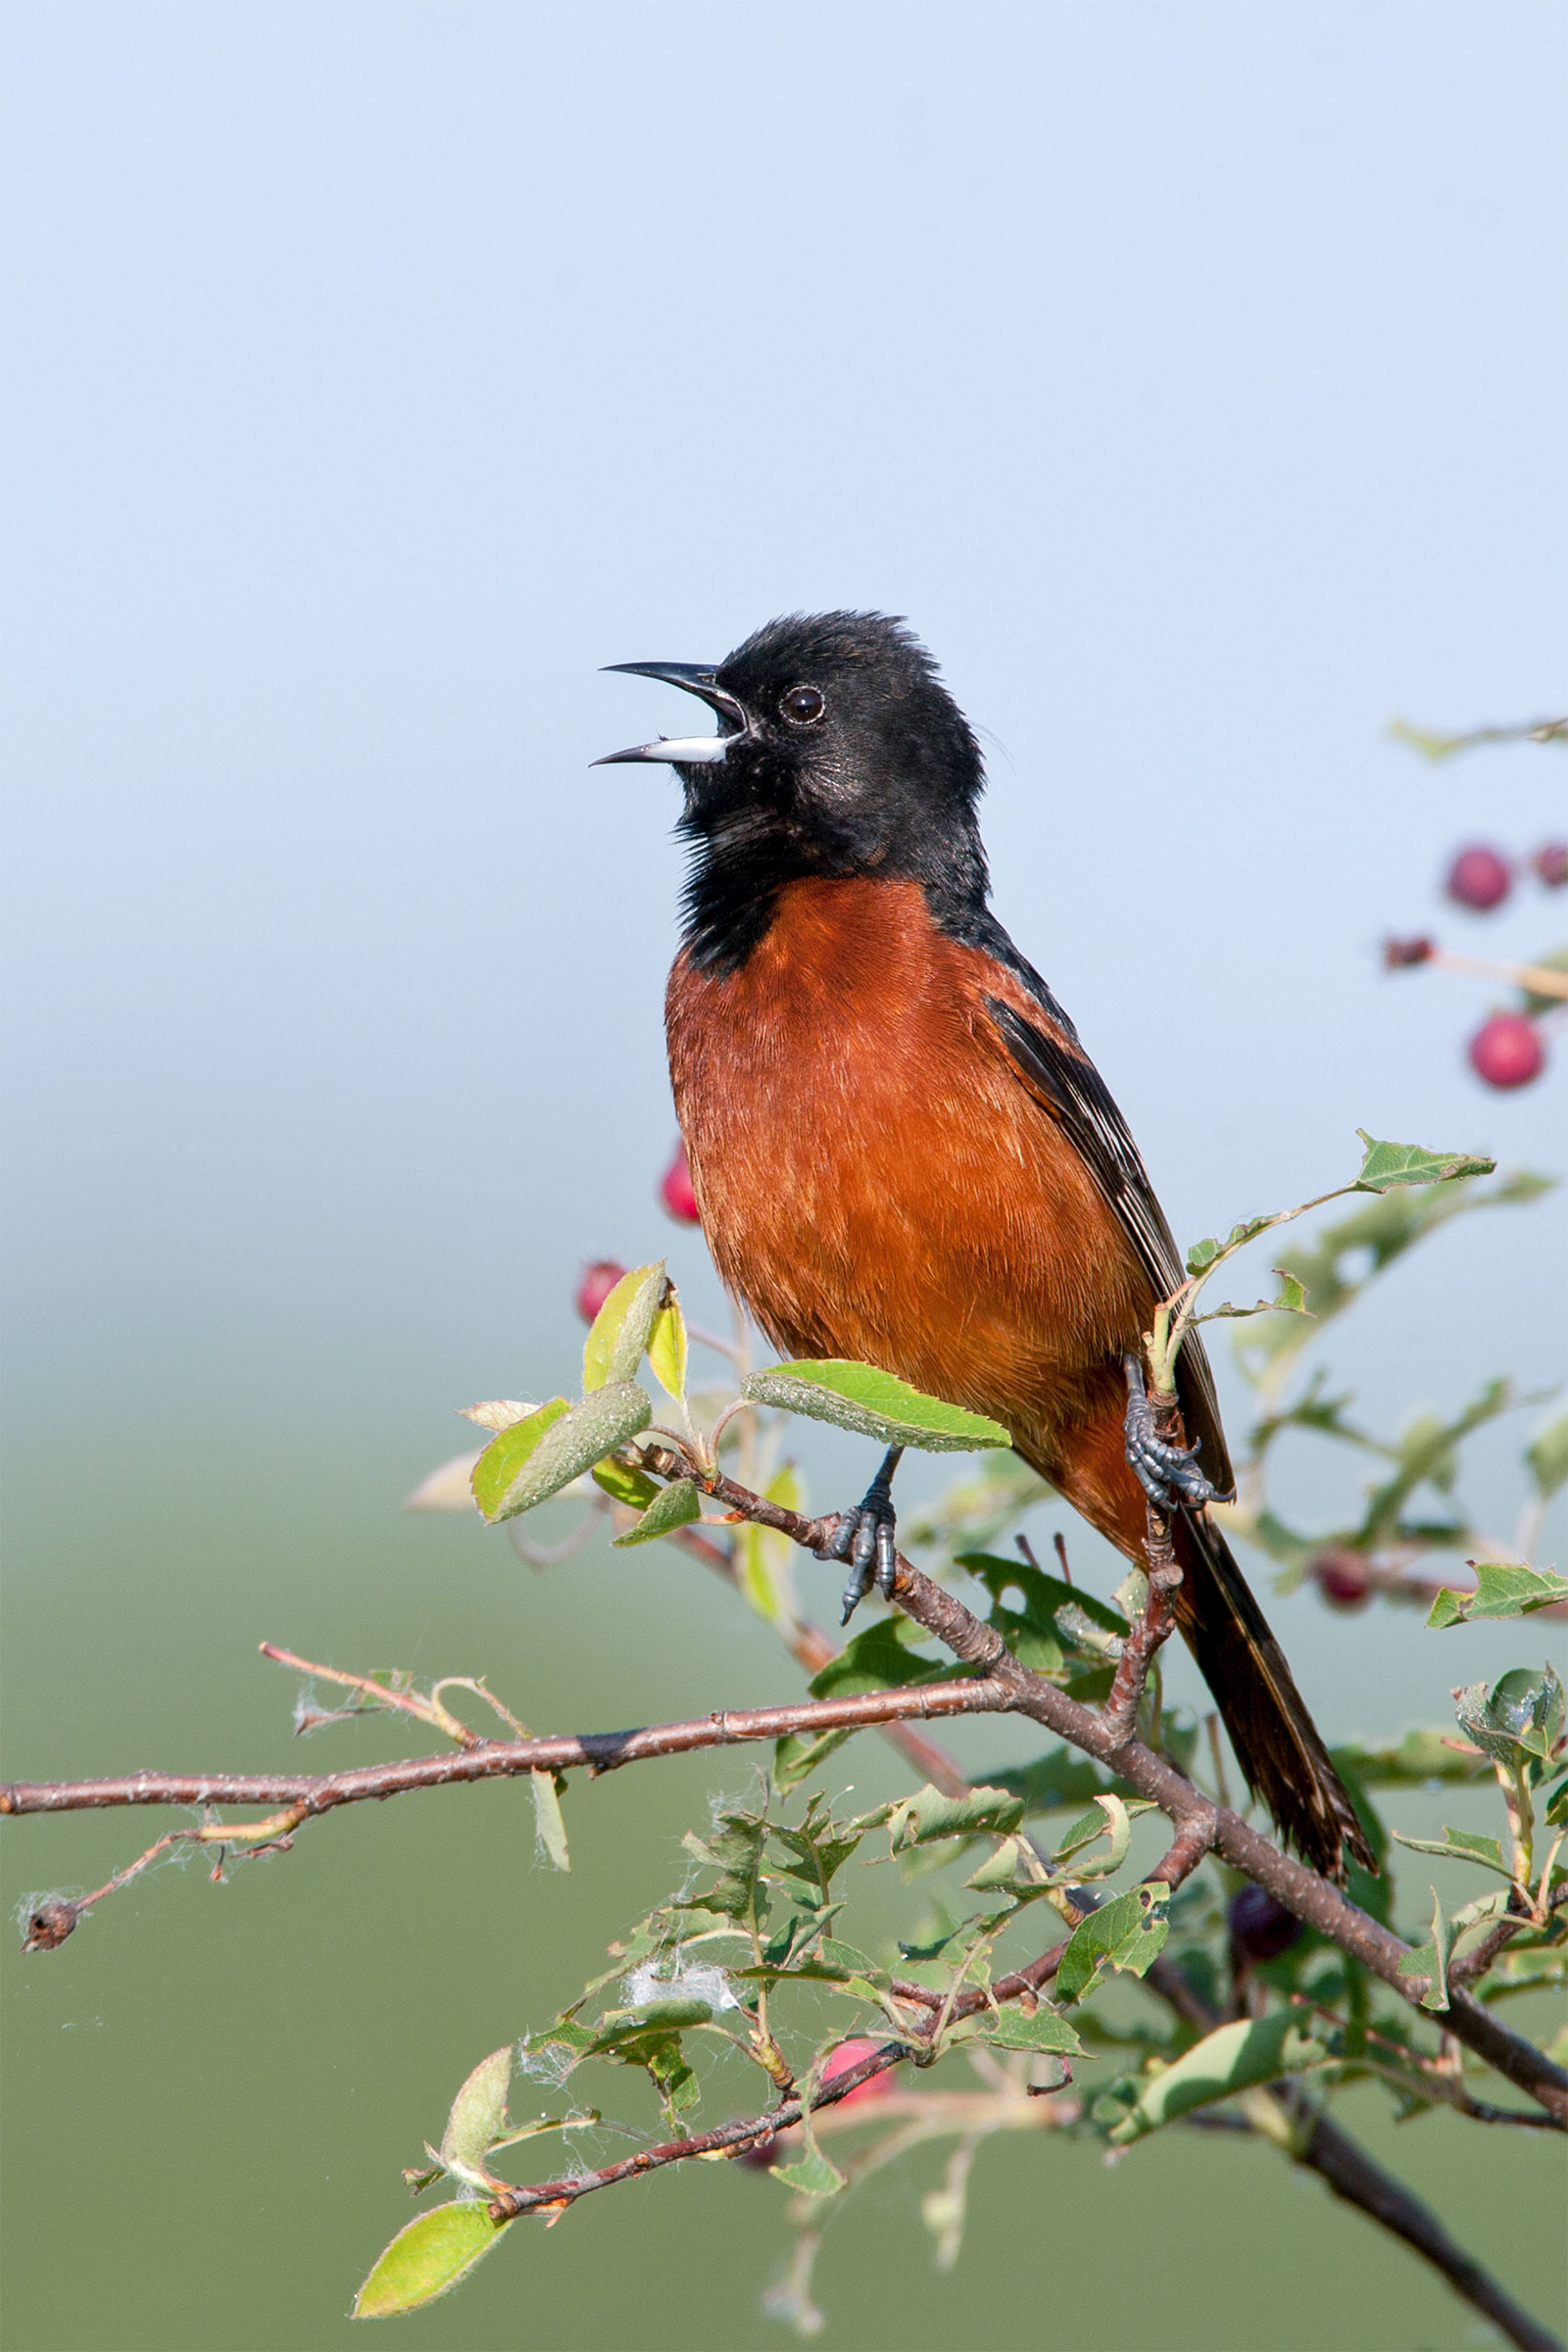 Orchard Orioles are moving into Wisconsin from the south. William Leaman/Alamy